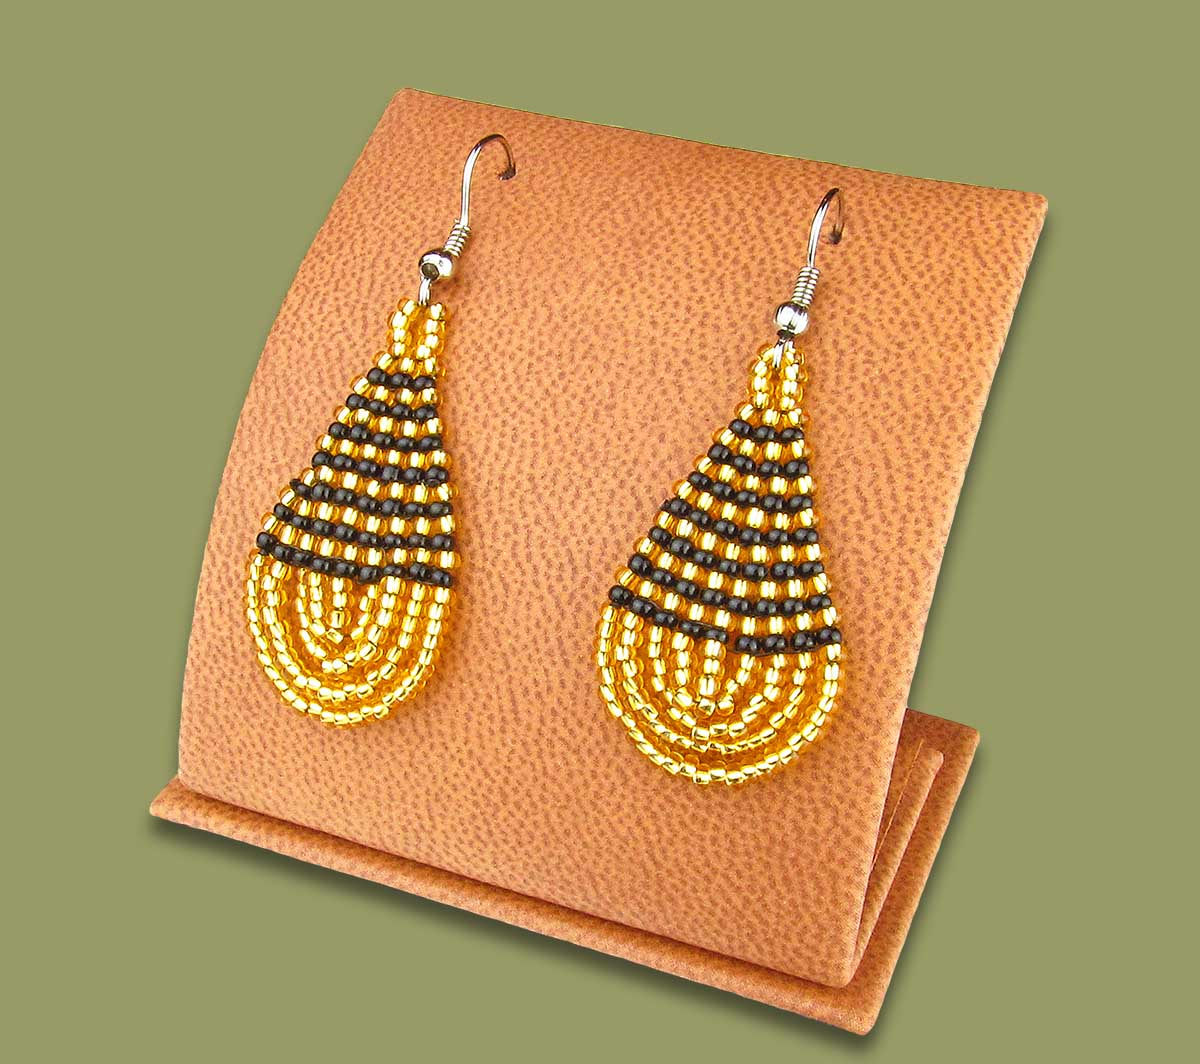 Small Beaded Ear Rings Tear Drop Gold Black